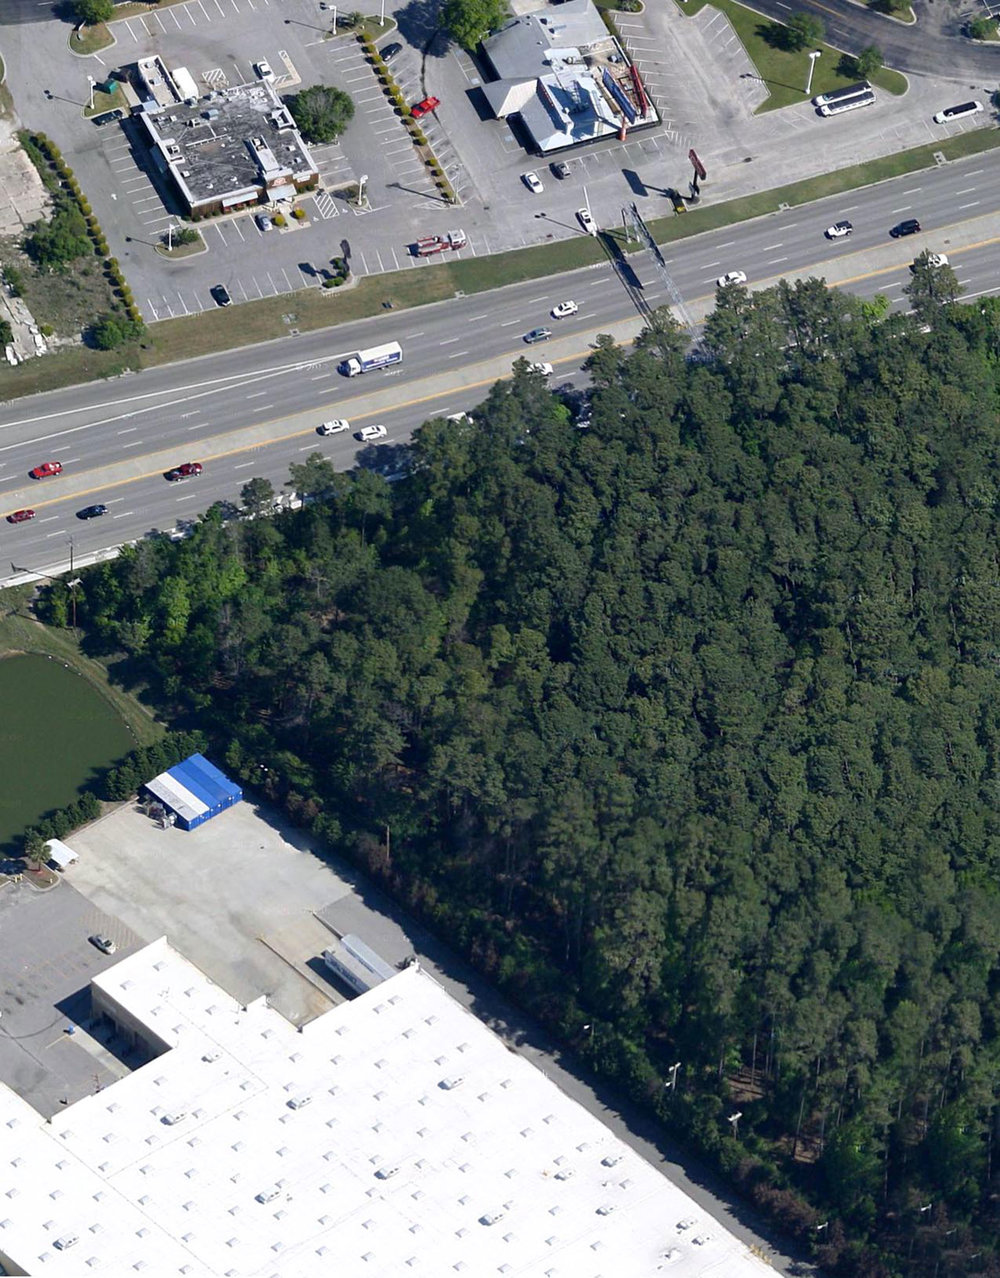 Figure 4. Walmart Supercenter across from Myrtle Beach Mall, adjacent to Meher Spiritual Center's virgin forest.